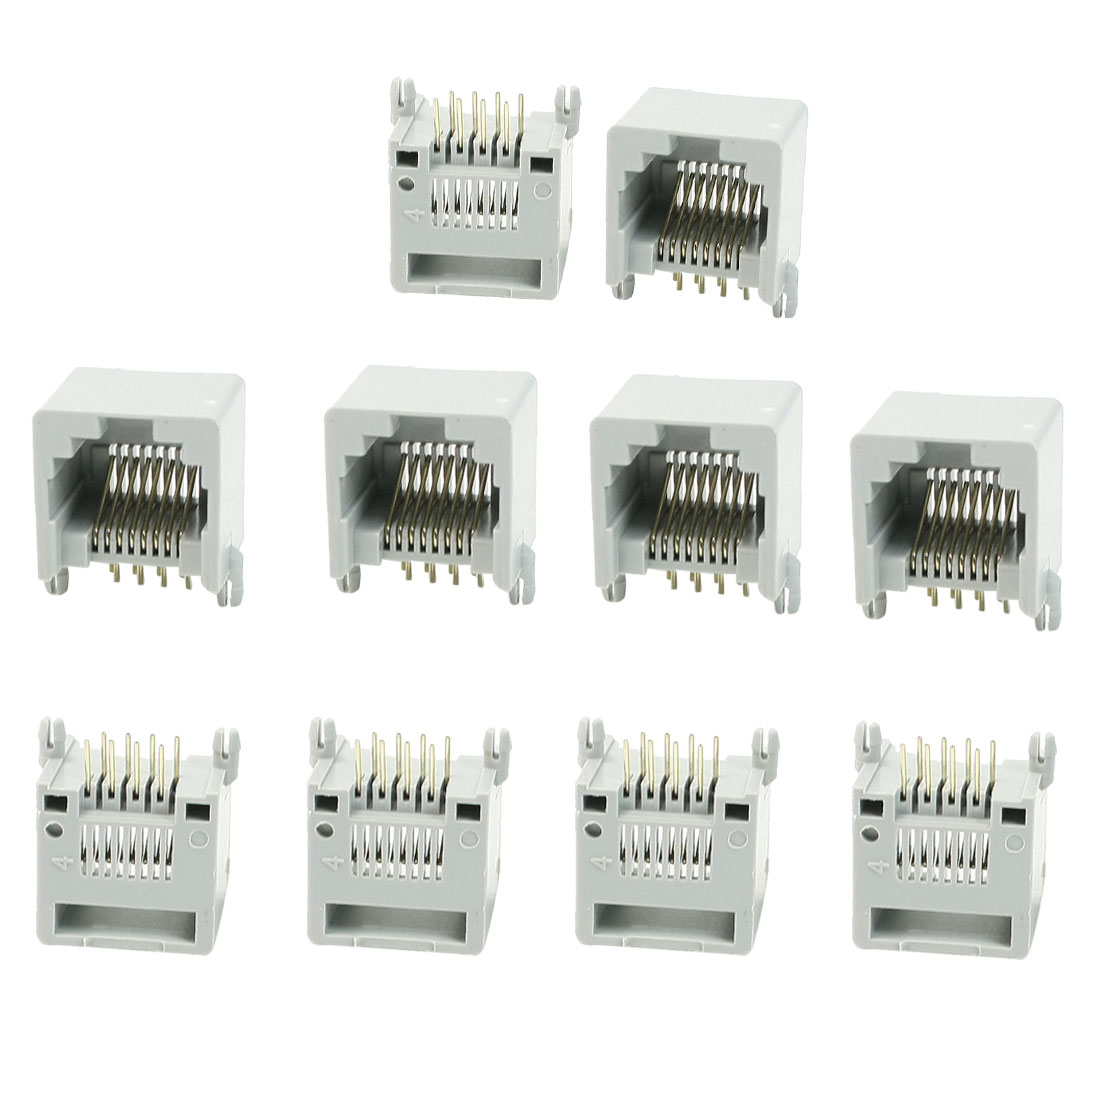 10 x Gray Plastic RJ45 8P8C Modular Jacks Connectors for LAN Network